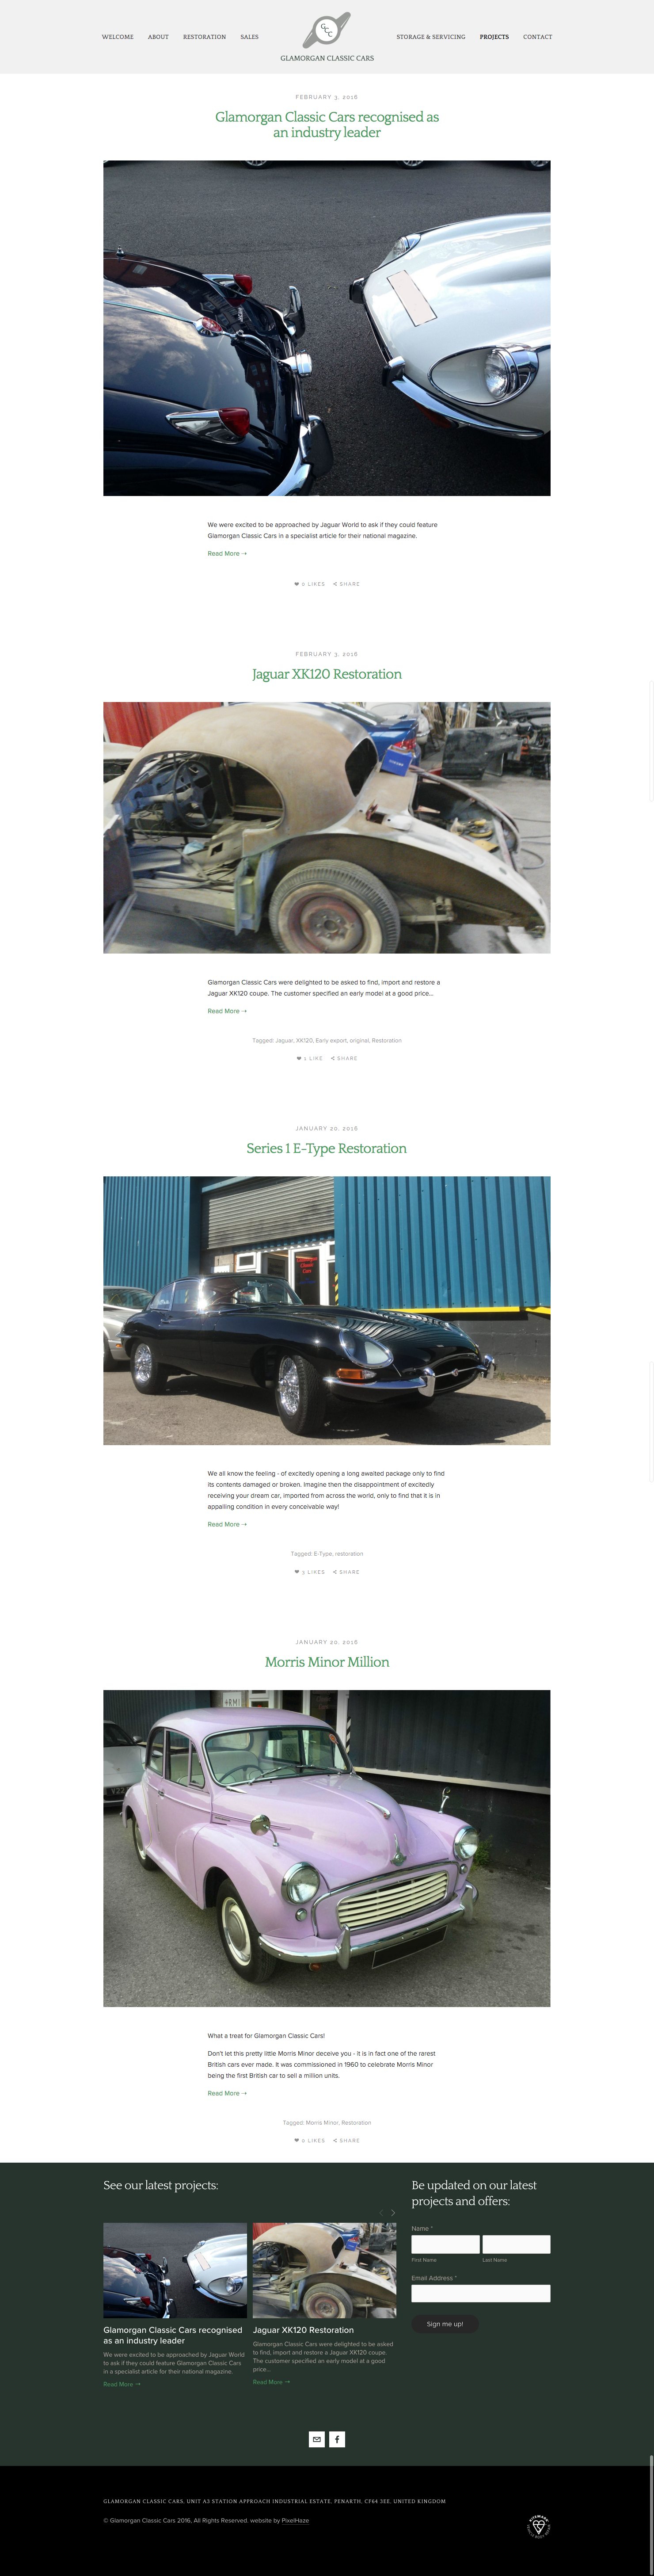 FireShot Capture 9 - Projects — Glamorgan Classic_ - http___www.glamorganclassiccars.co.uk_projects_.png